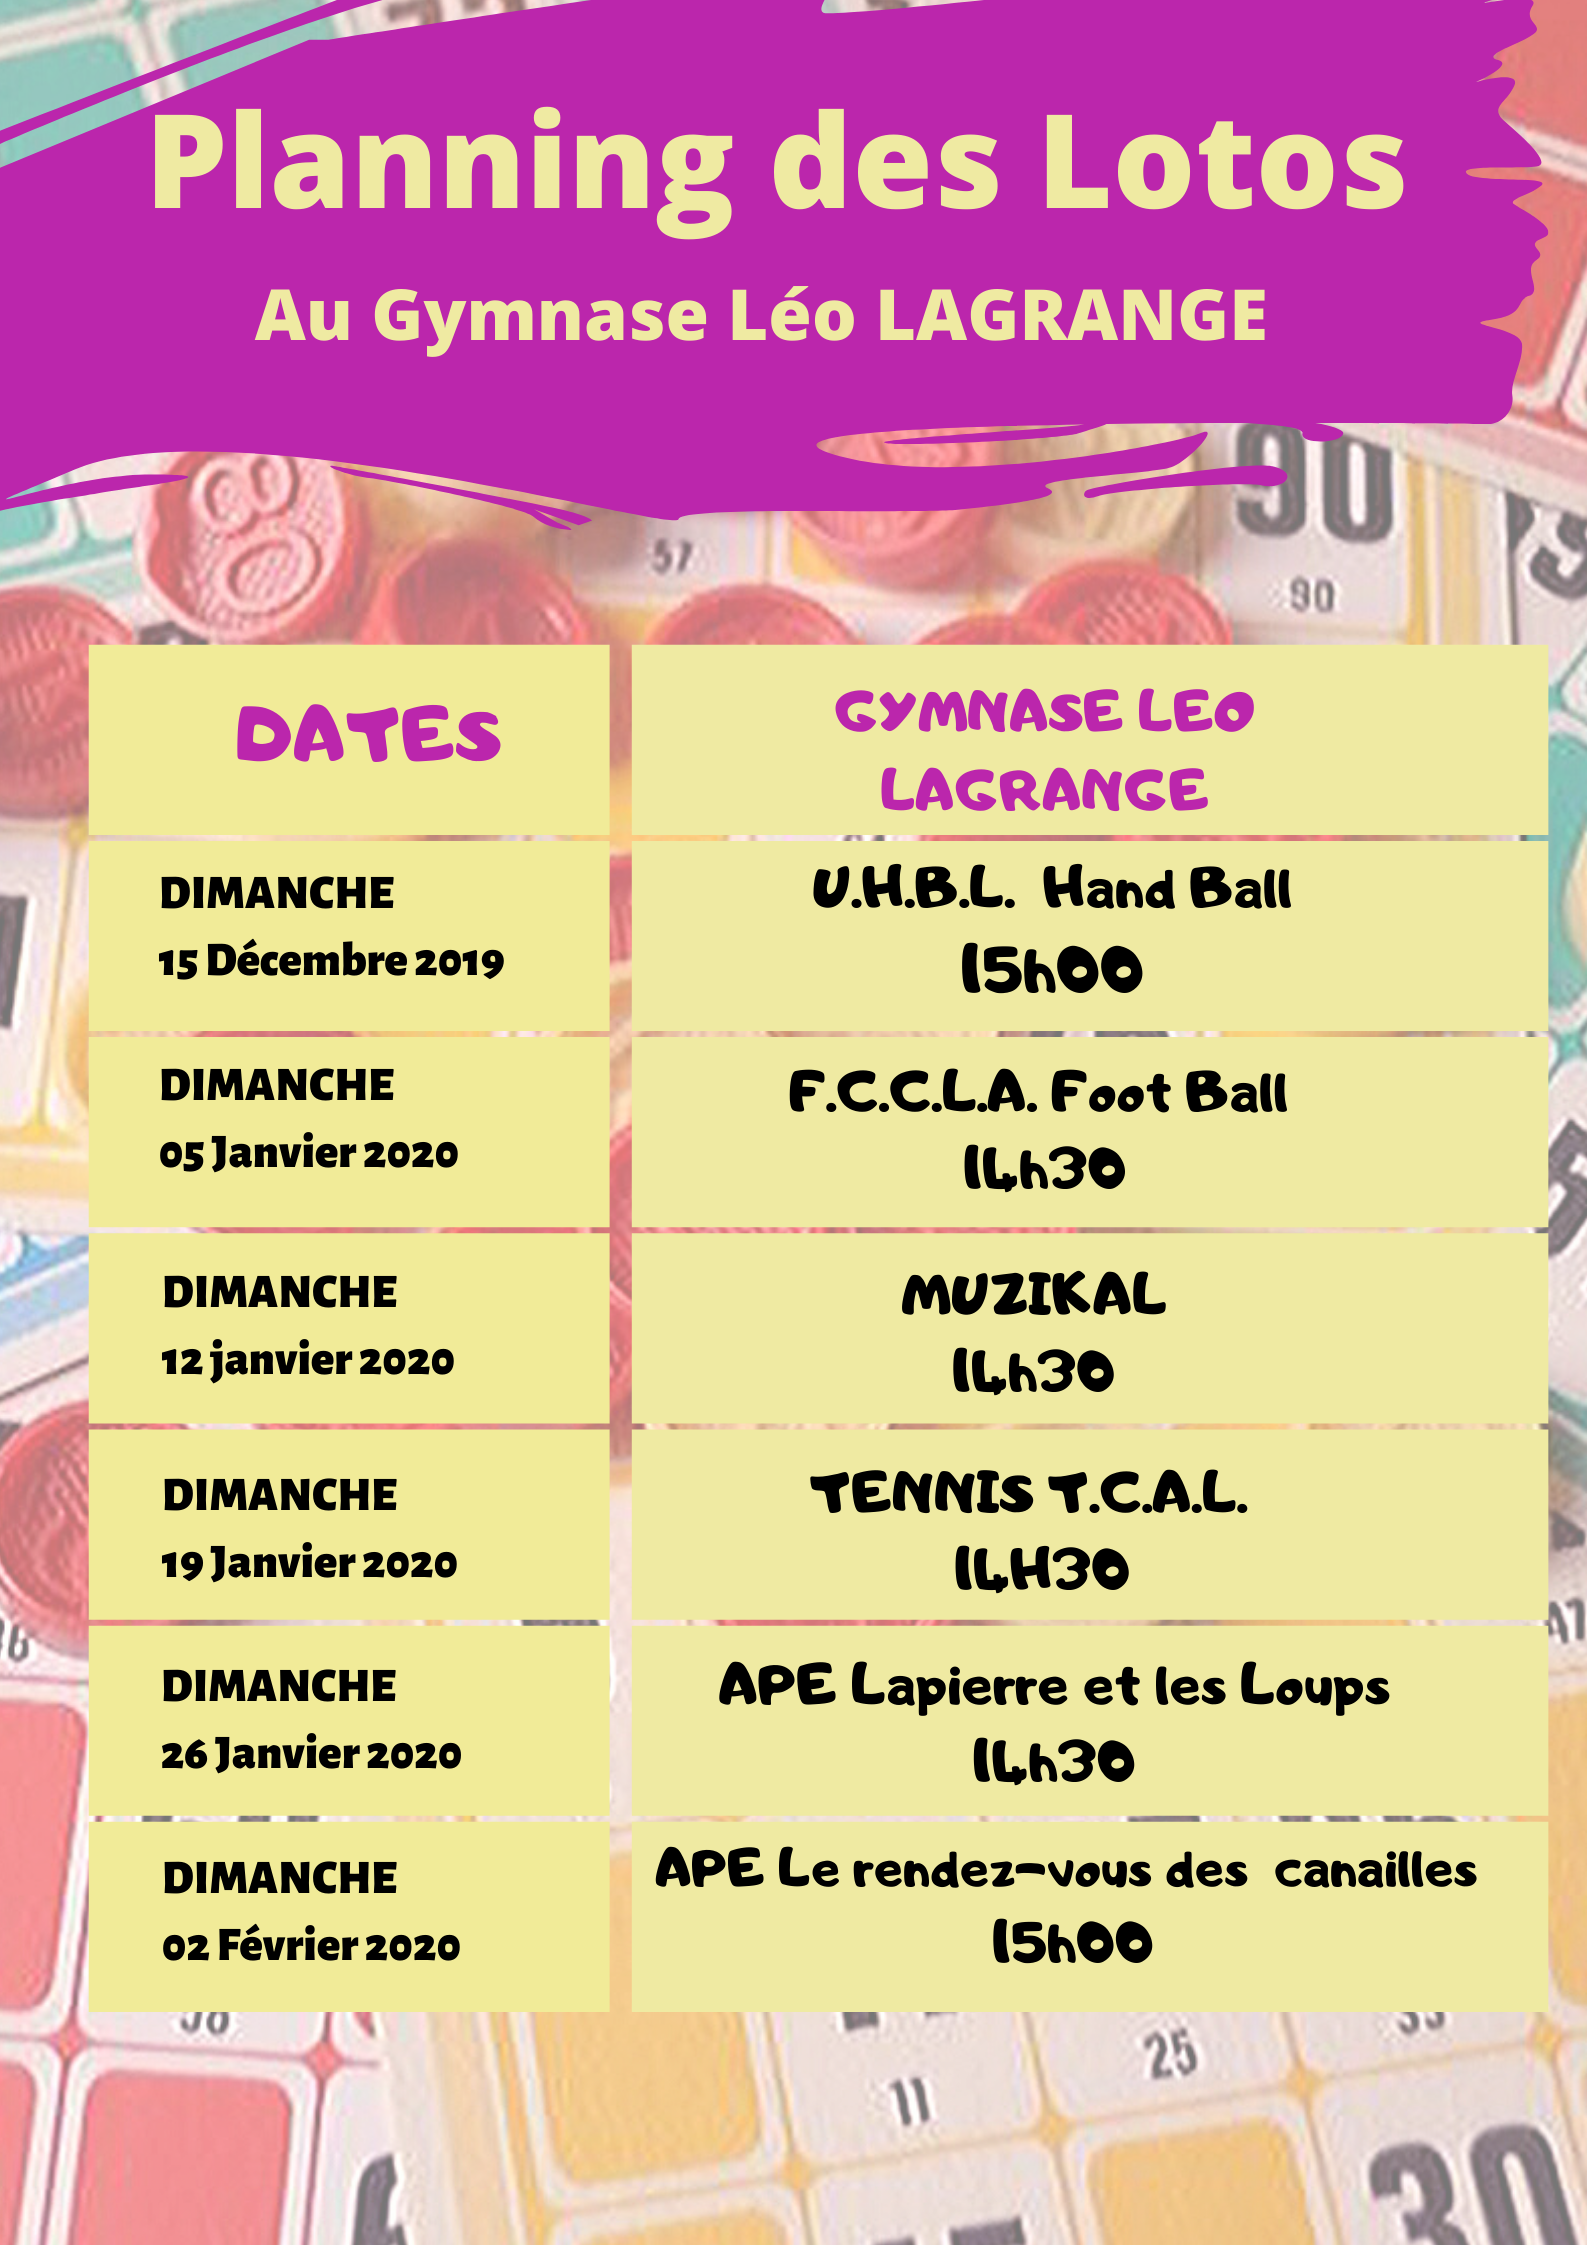 planning des Lotos